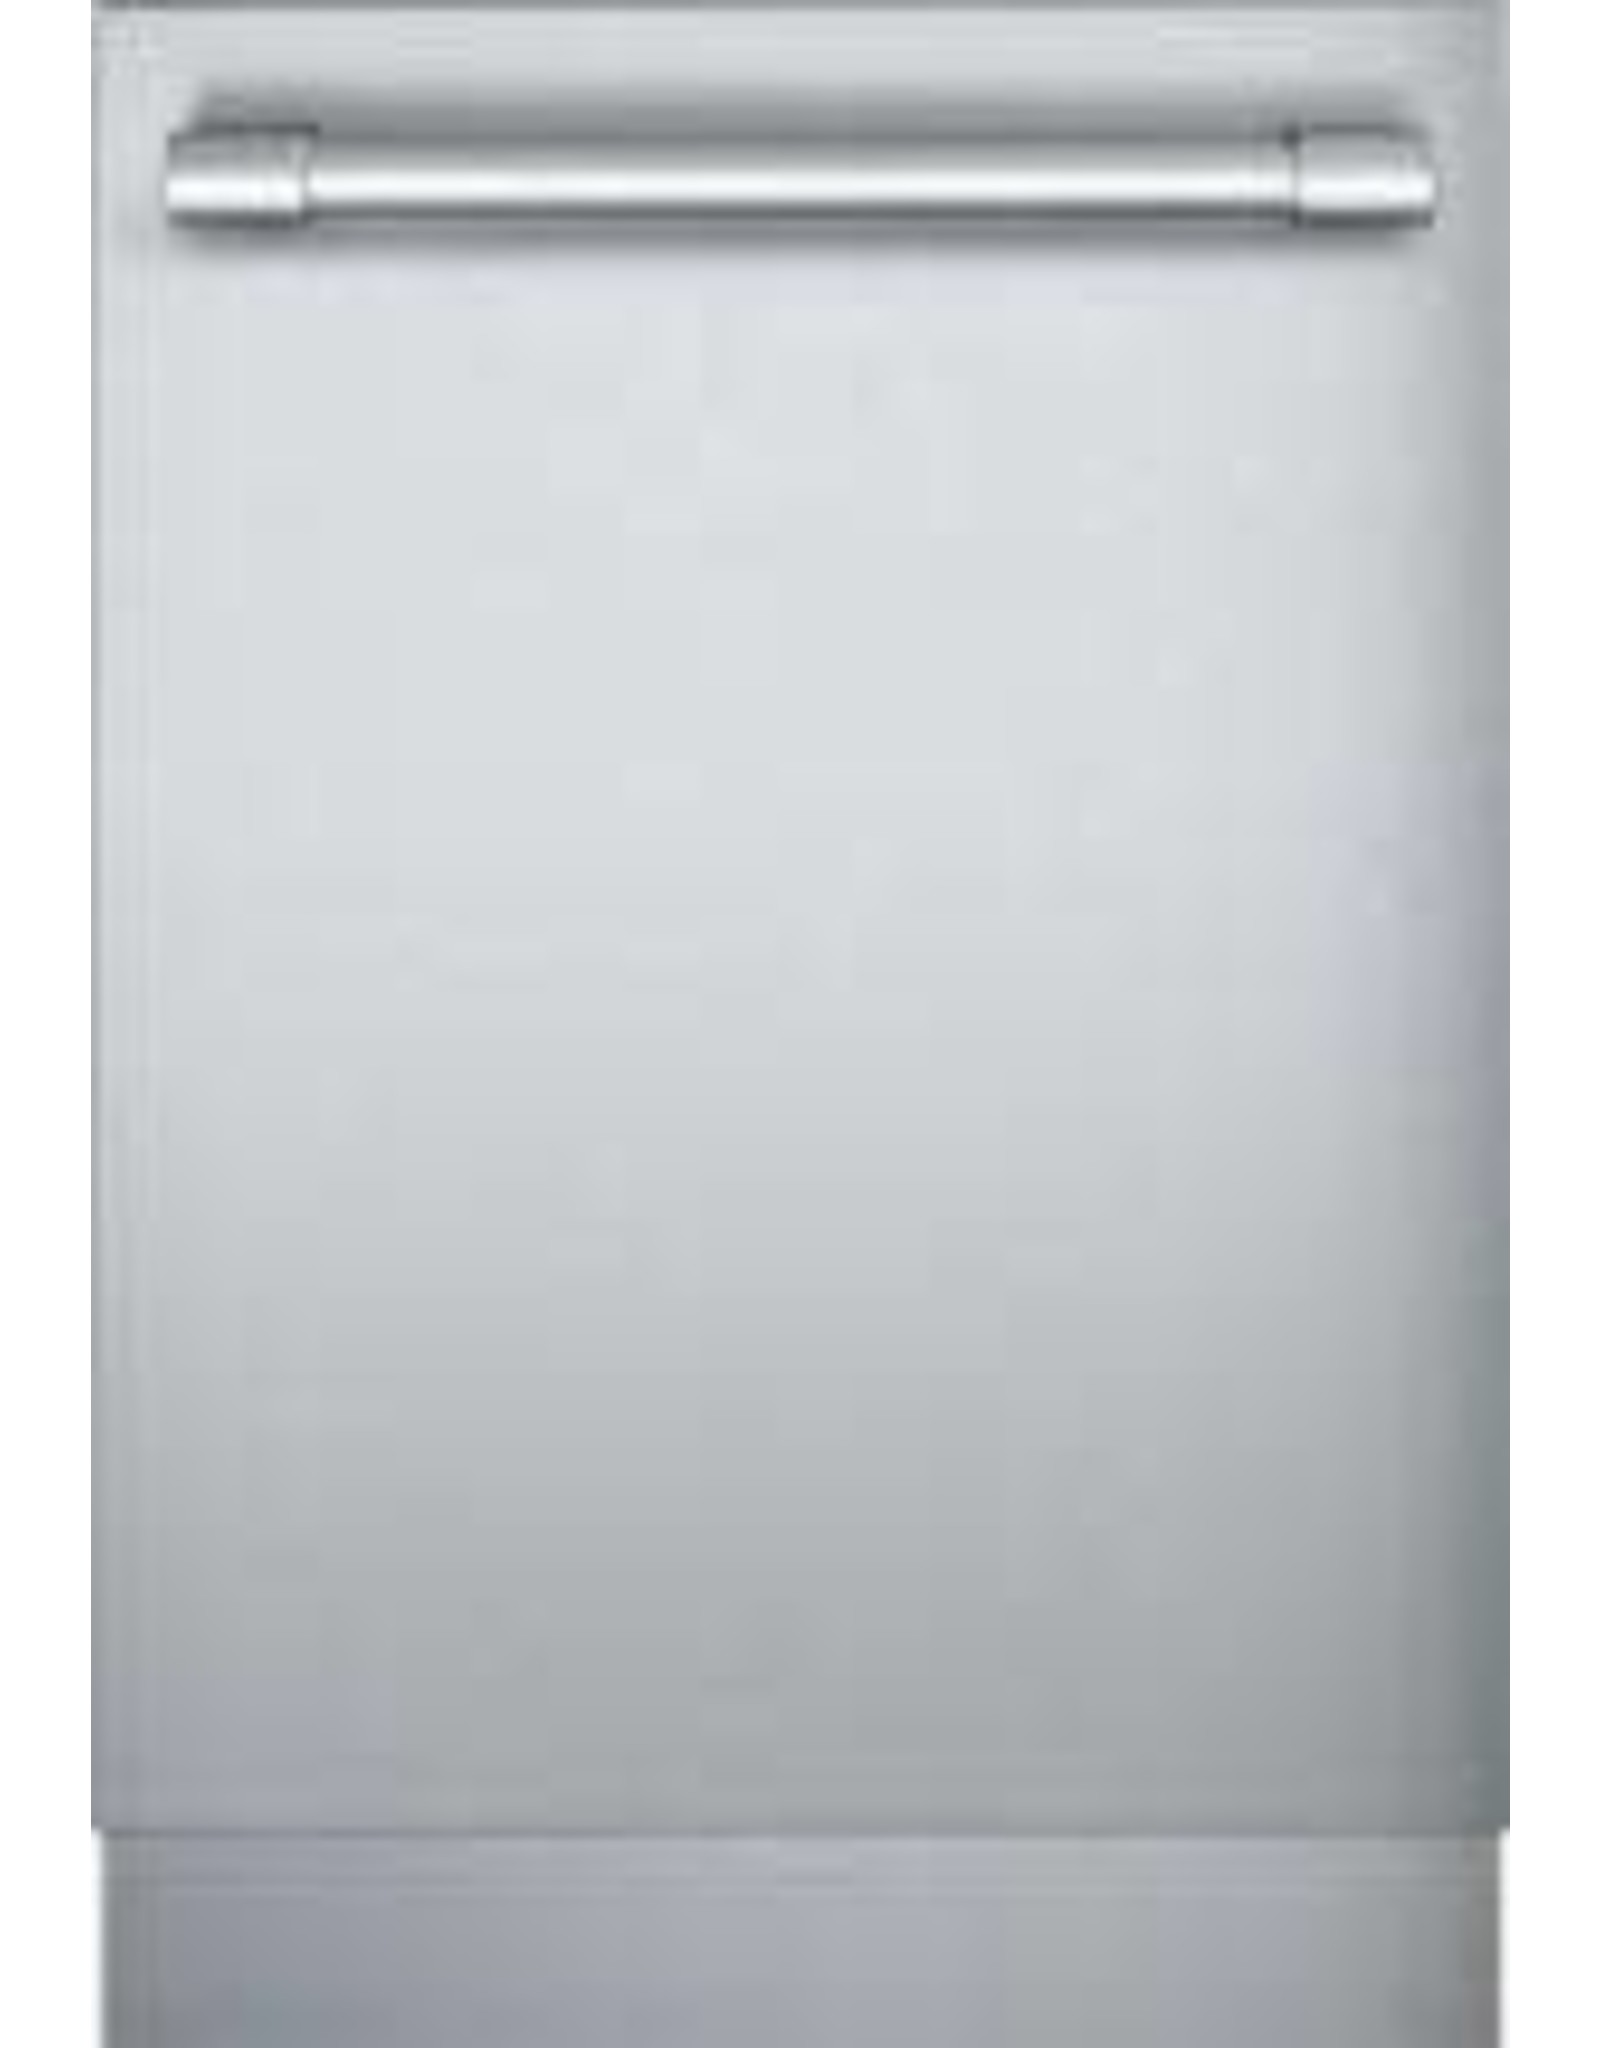 DWHD650WFP 24 Inch Fully Integrated Smart Dishwasher with 15 Place Settings, 6 Wash Cycles, Chef's Tool Drawer, 48 dBA Silence Rating, PowerBoost®, Sens-A-Wash®, Extra-Tall-Item™, Blue PowerBeam®, Dosage Assist, and ENERGY STAR® Certified: Stainless